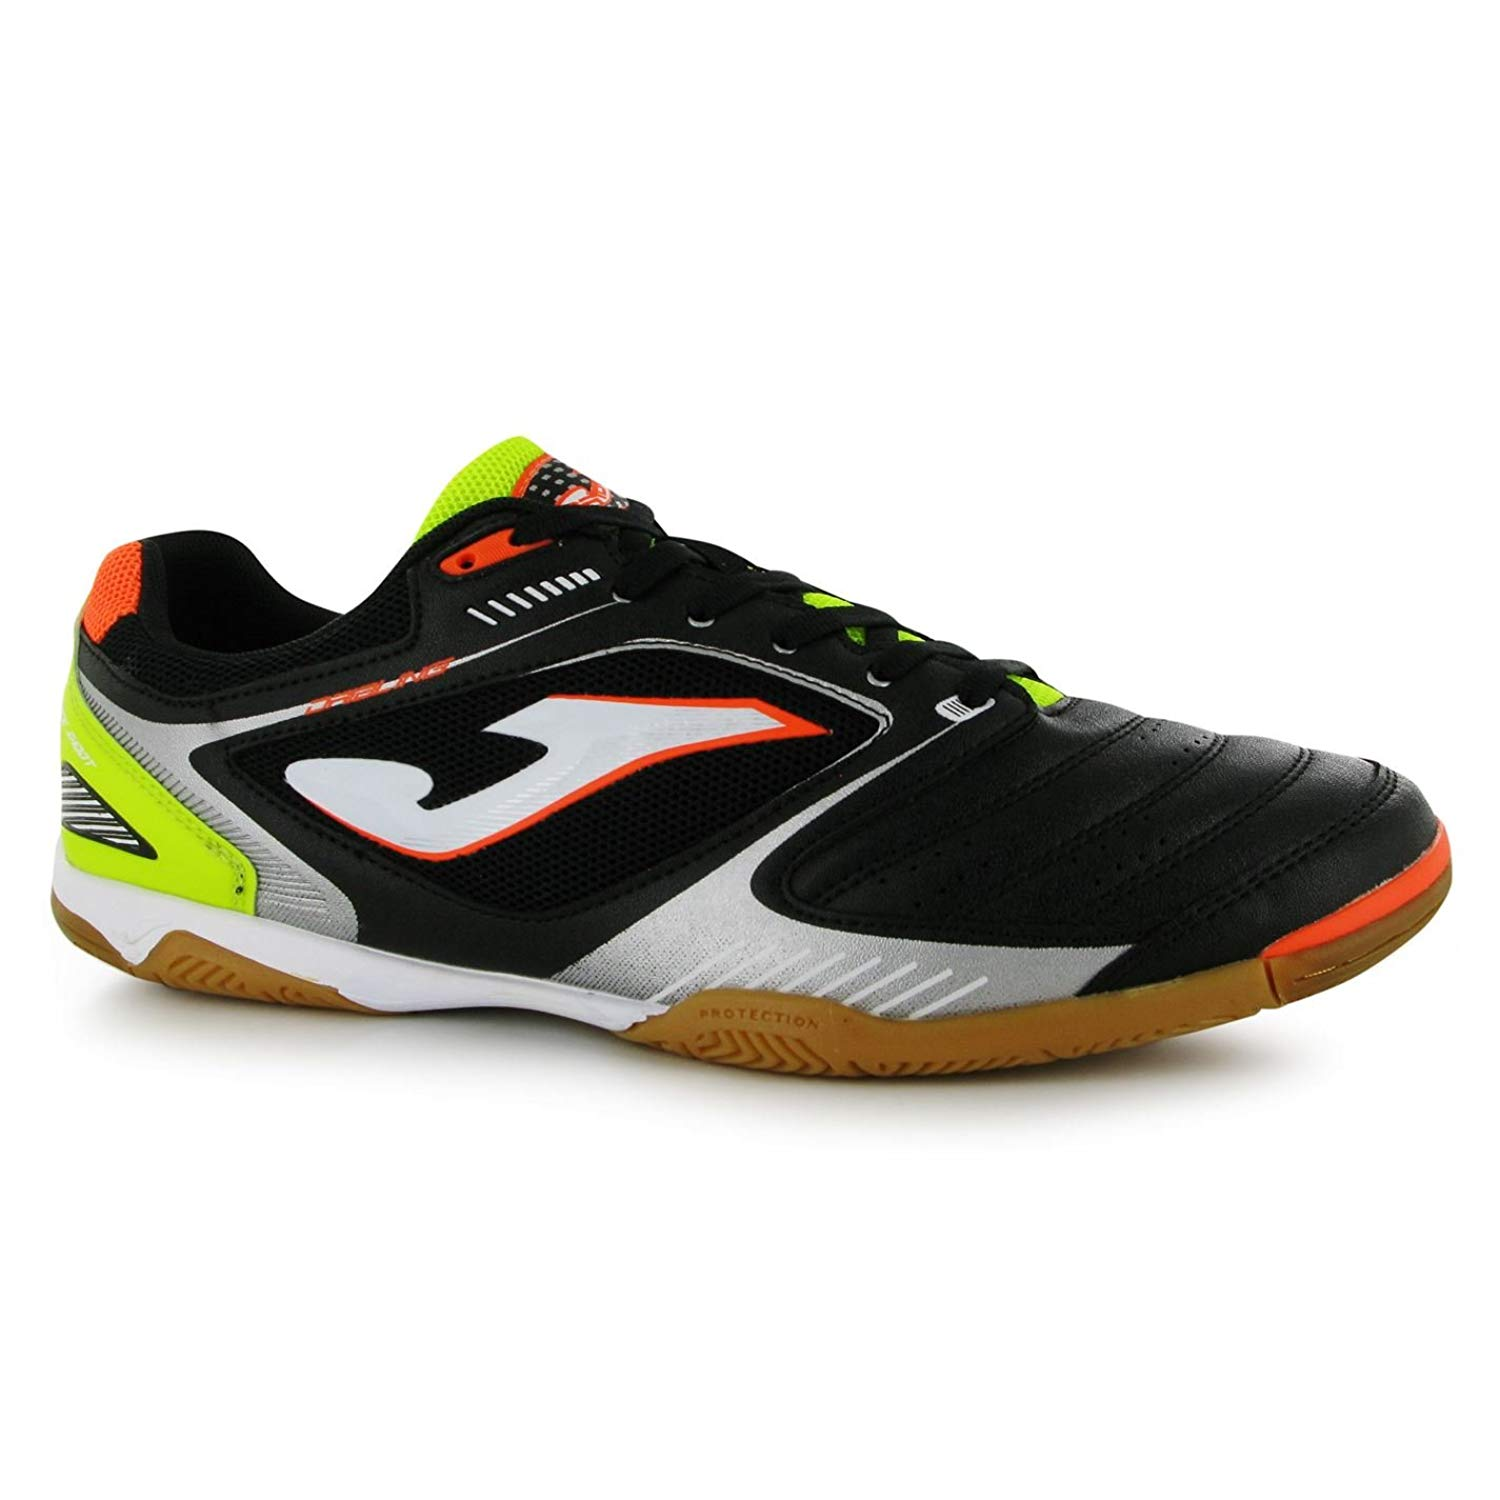 81240f527 Get Quotations · Joma Mens Dribbling Indoor Football Boots Trainers Shoes